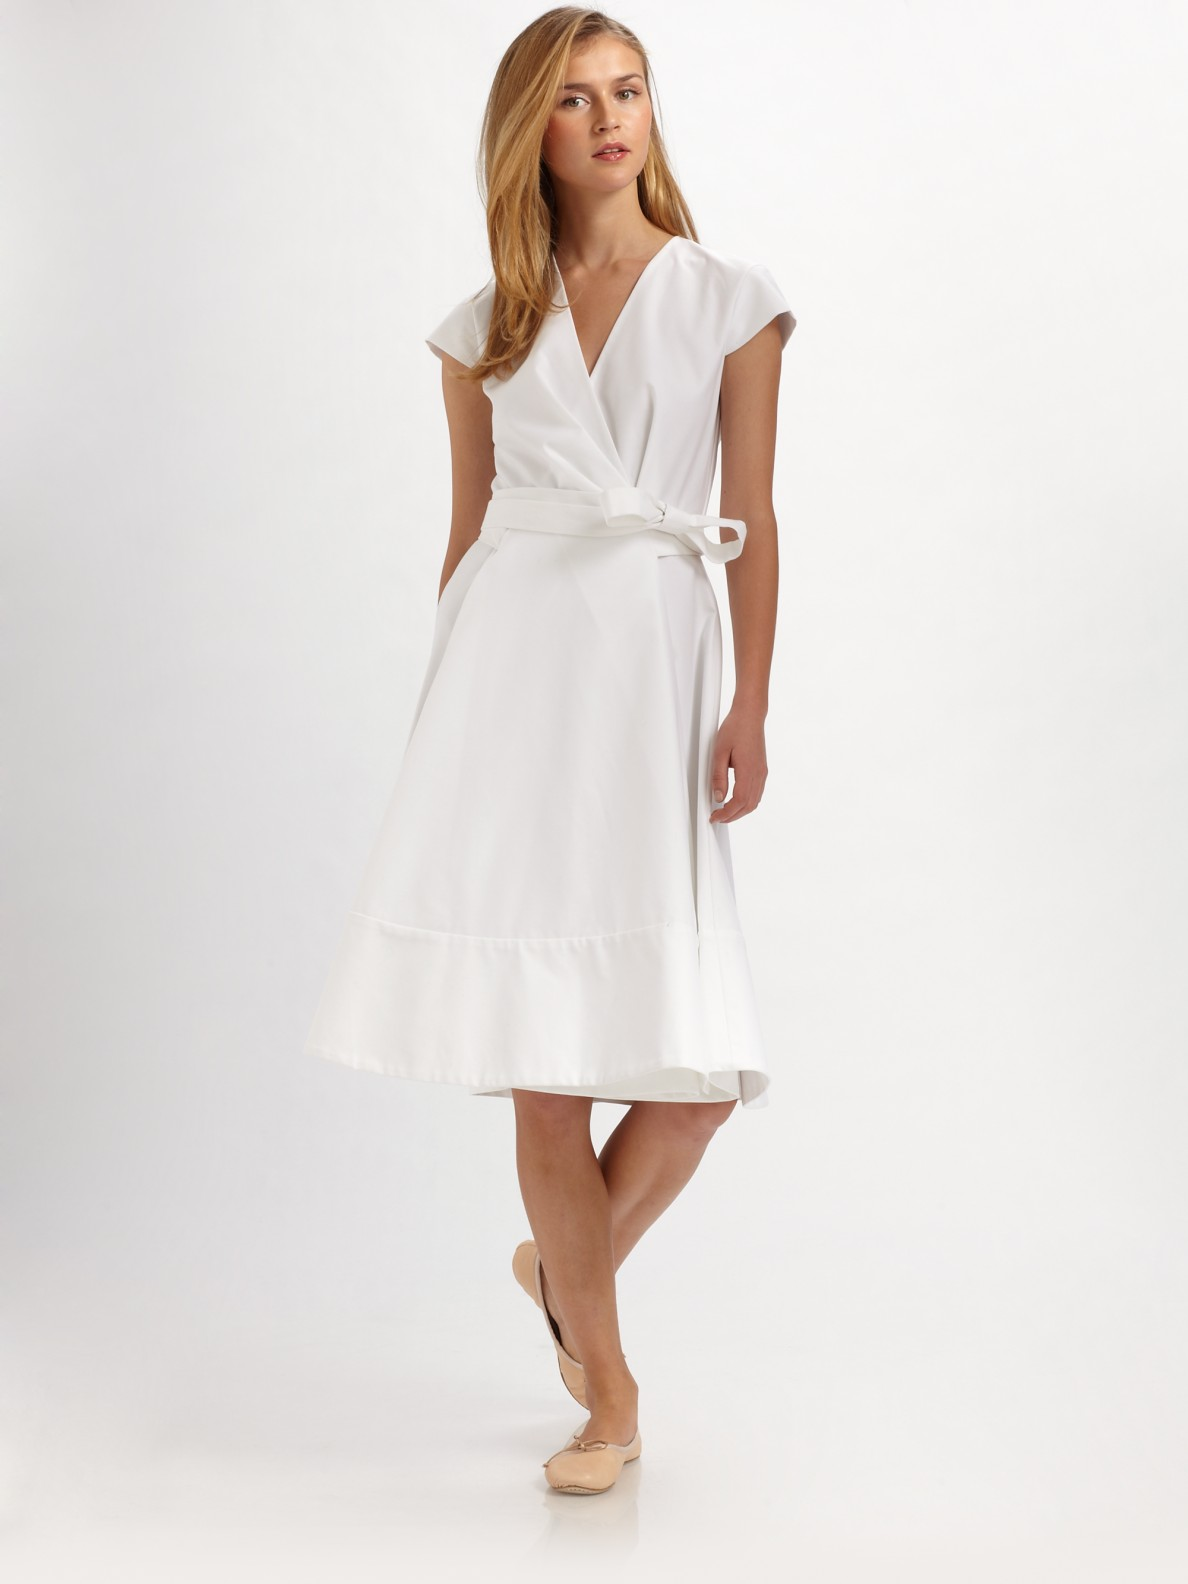 b0d6337cdd Chloé Cotton Cap Sleeve Wrap Dress in White - Lyst